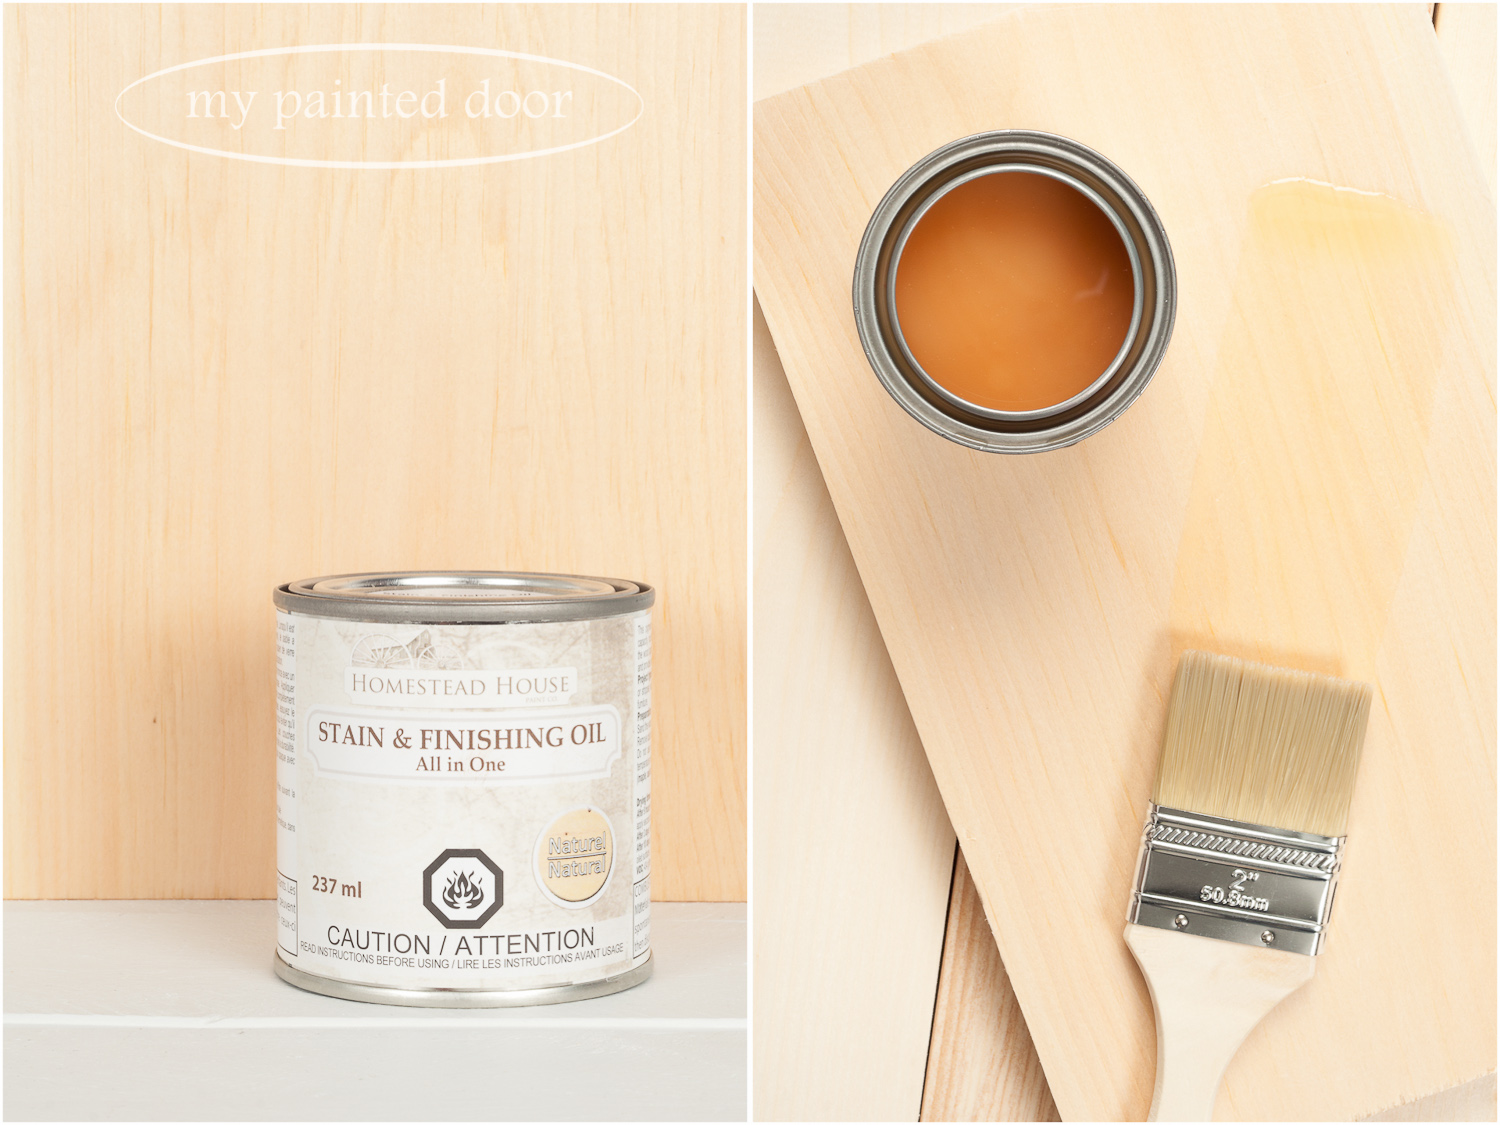 Homestead House Stain and Finishing Oil All in One - Natural - available online at My Painted Door